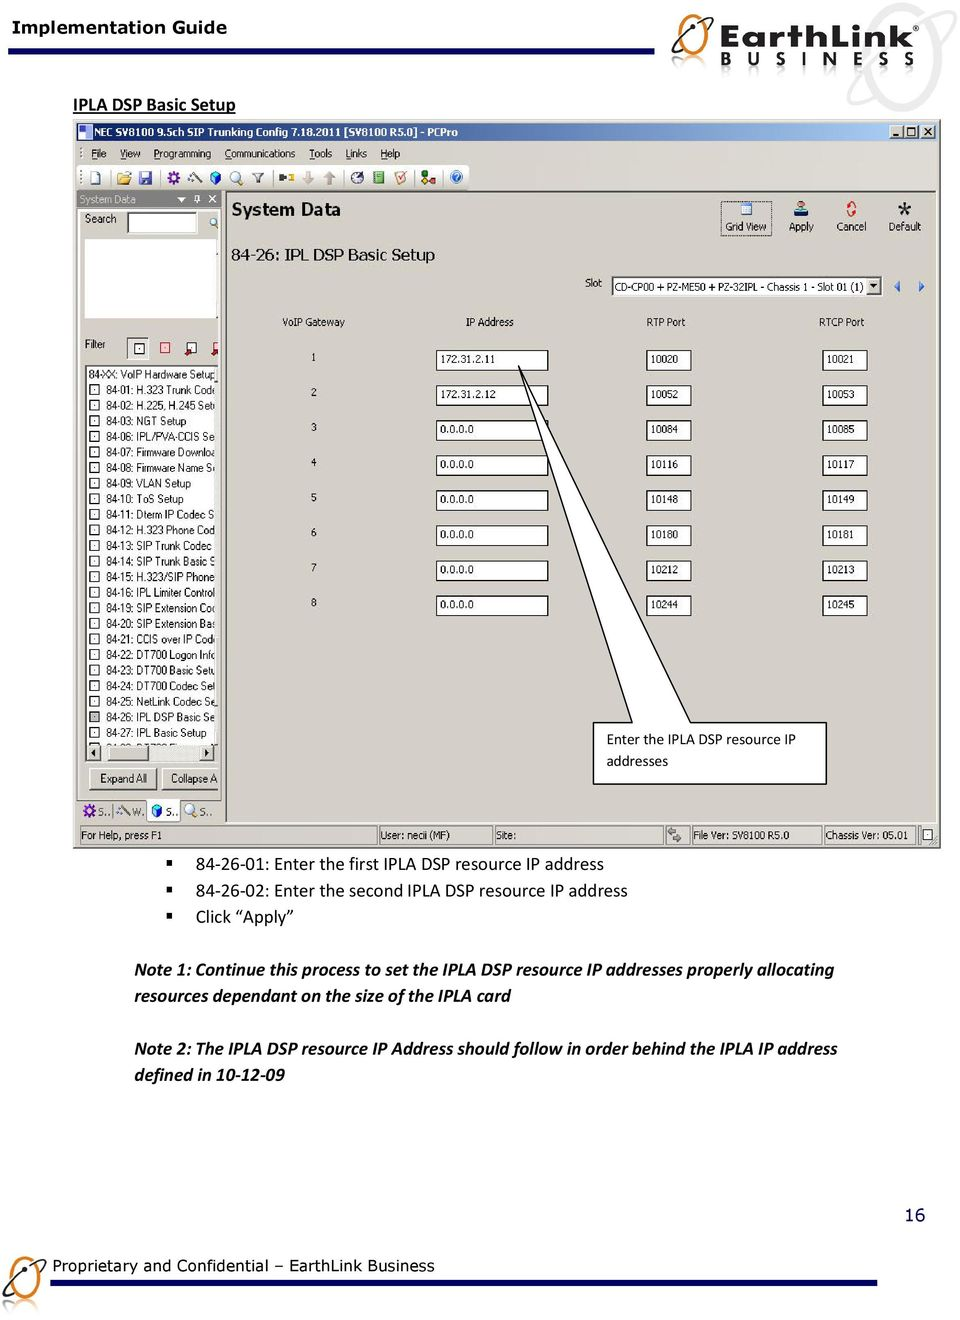 set the IPLA DSP resource IP addresses properly allocating resources dependant on the size of the IPLA card